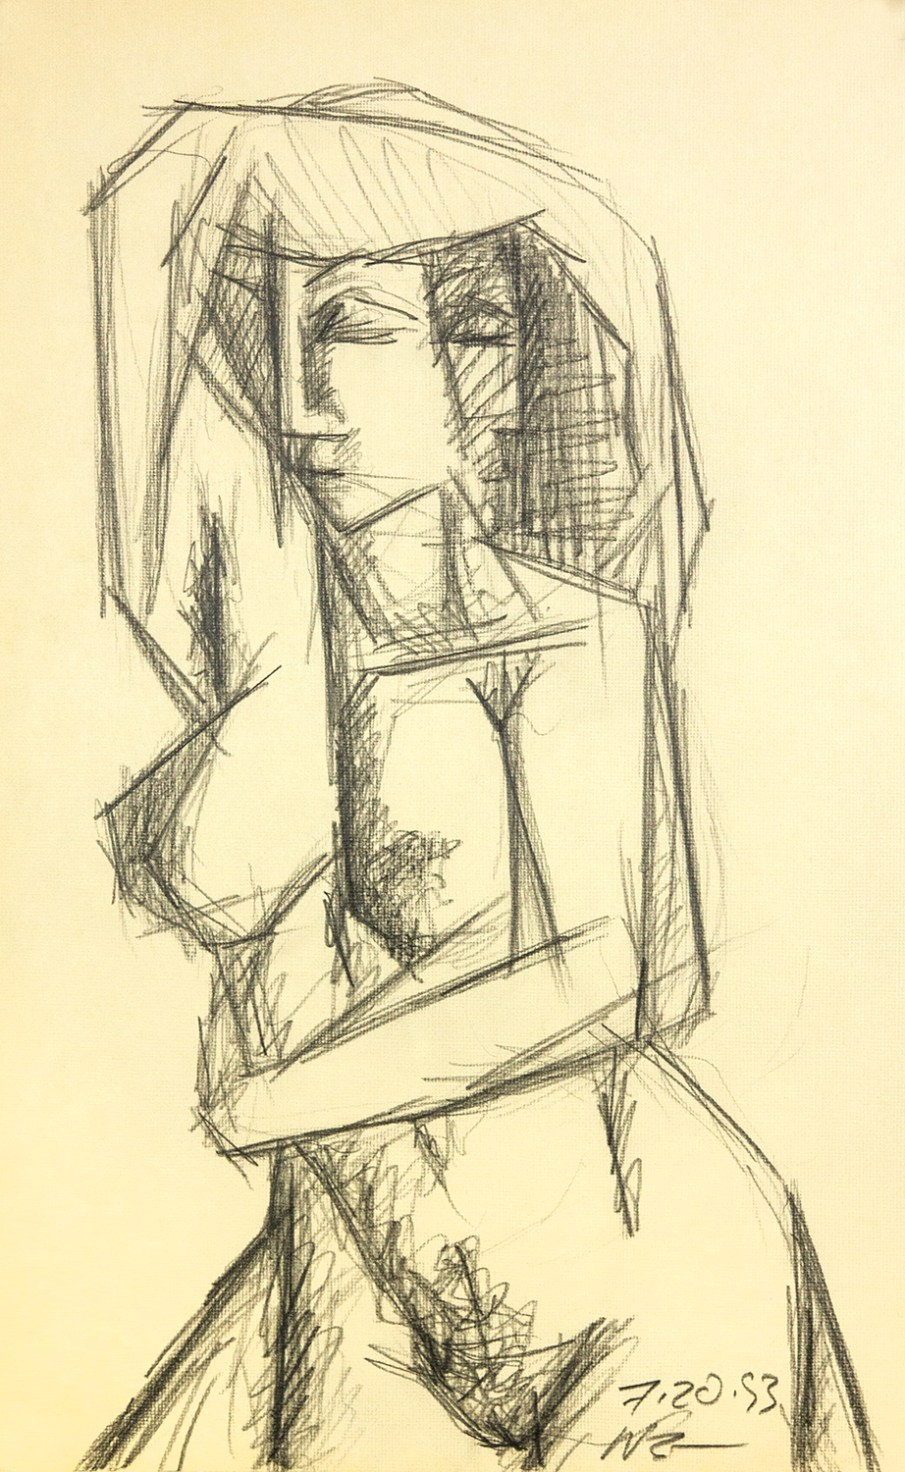 Standing Nude, graphite on paper, 16 X 10. 1993